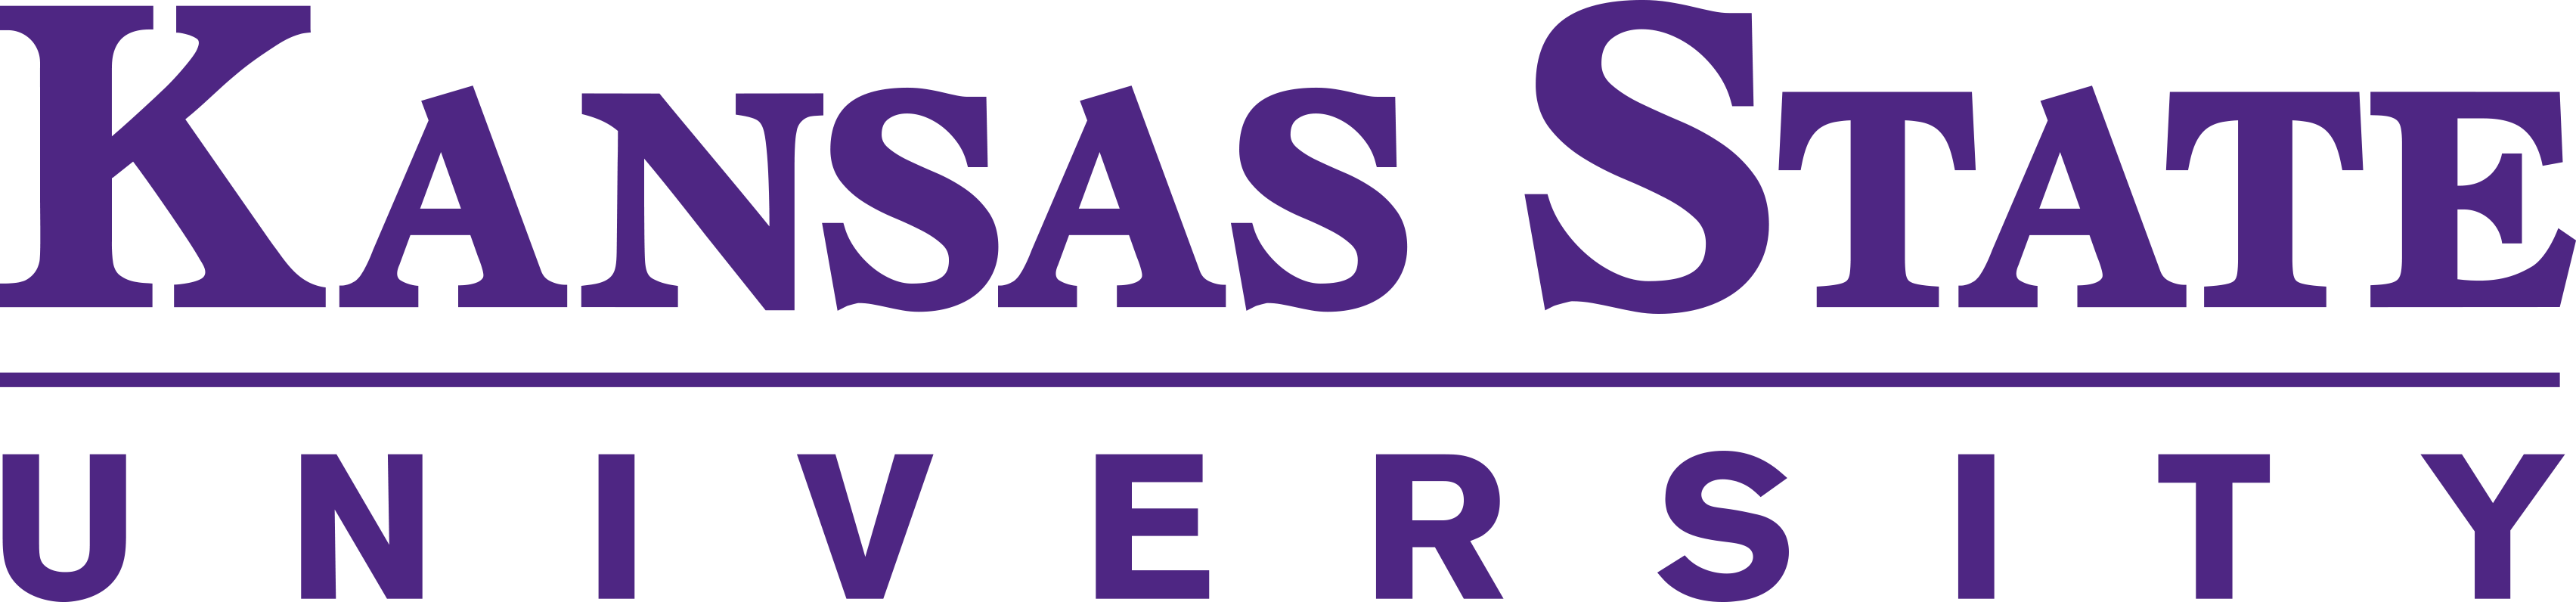 Kansas State University: College of Human Ecology - Physician Assistant Program